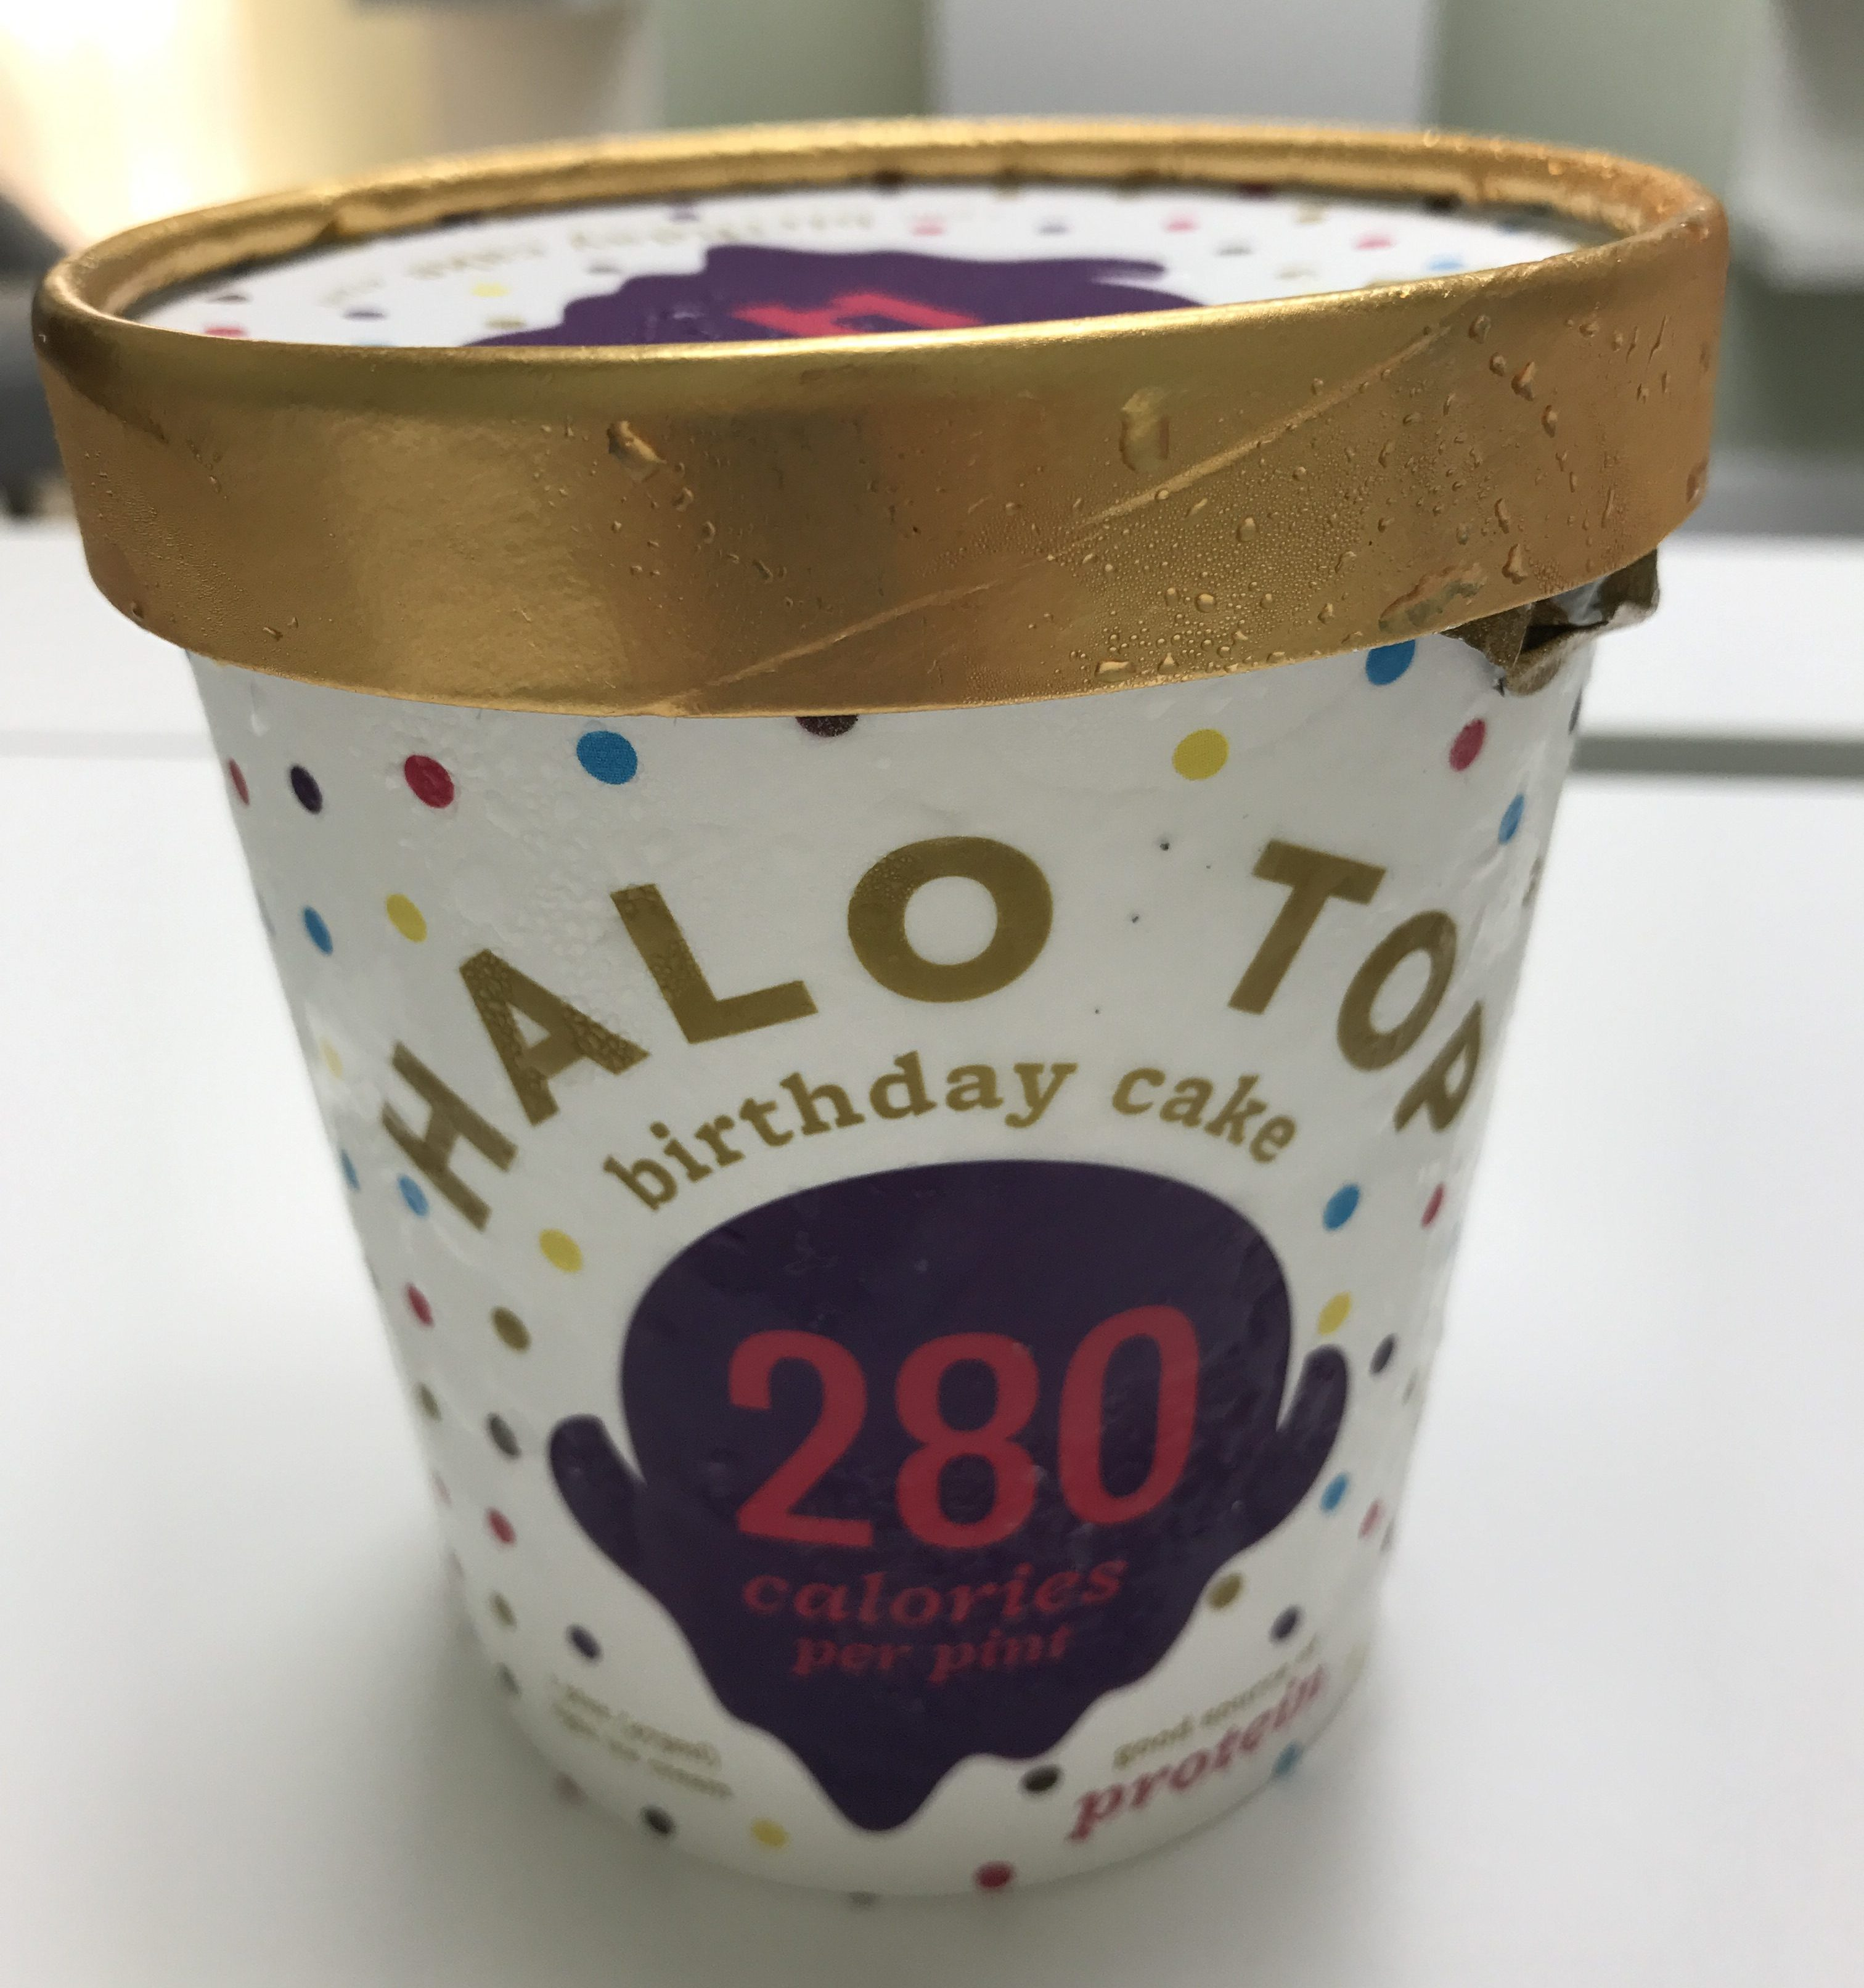 is halo top good for me?